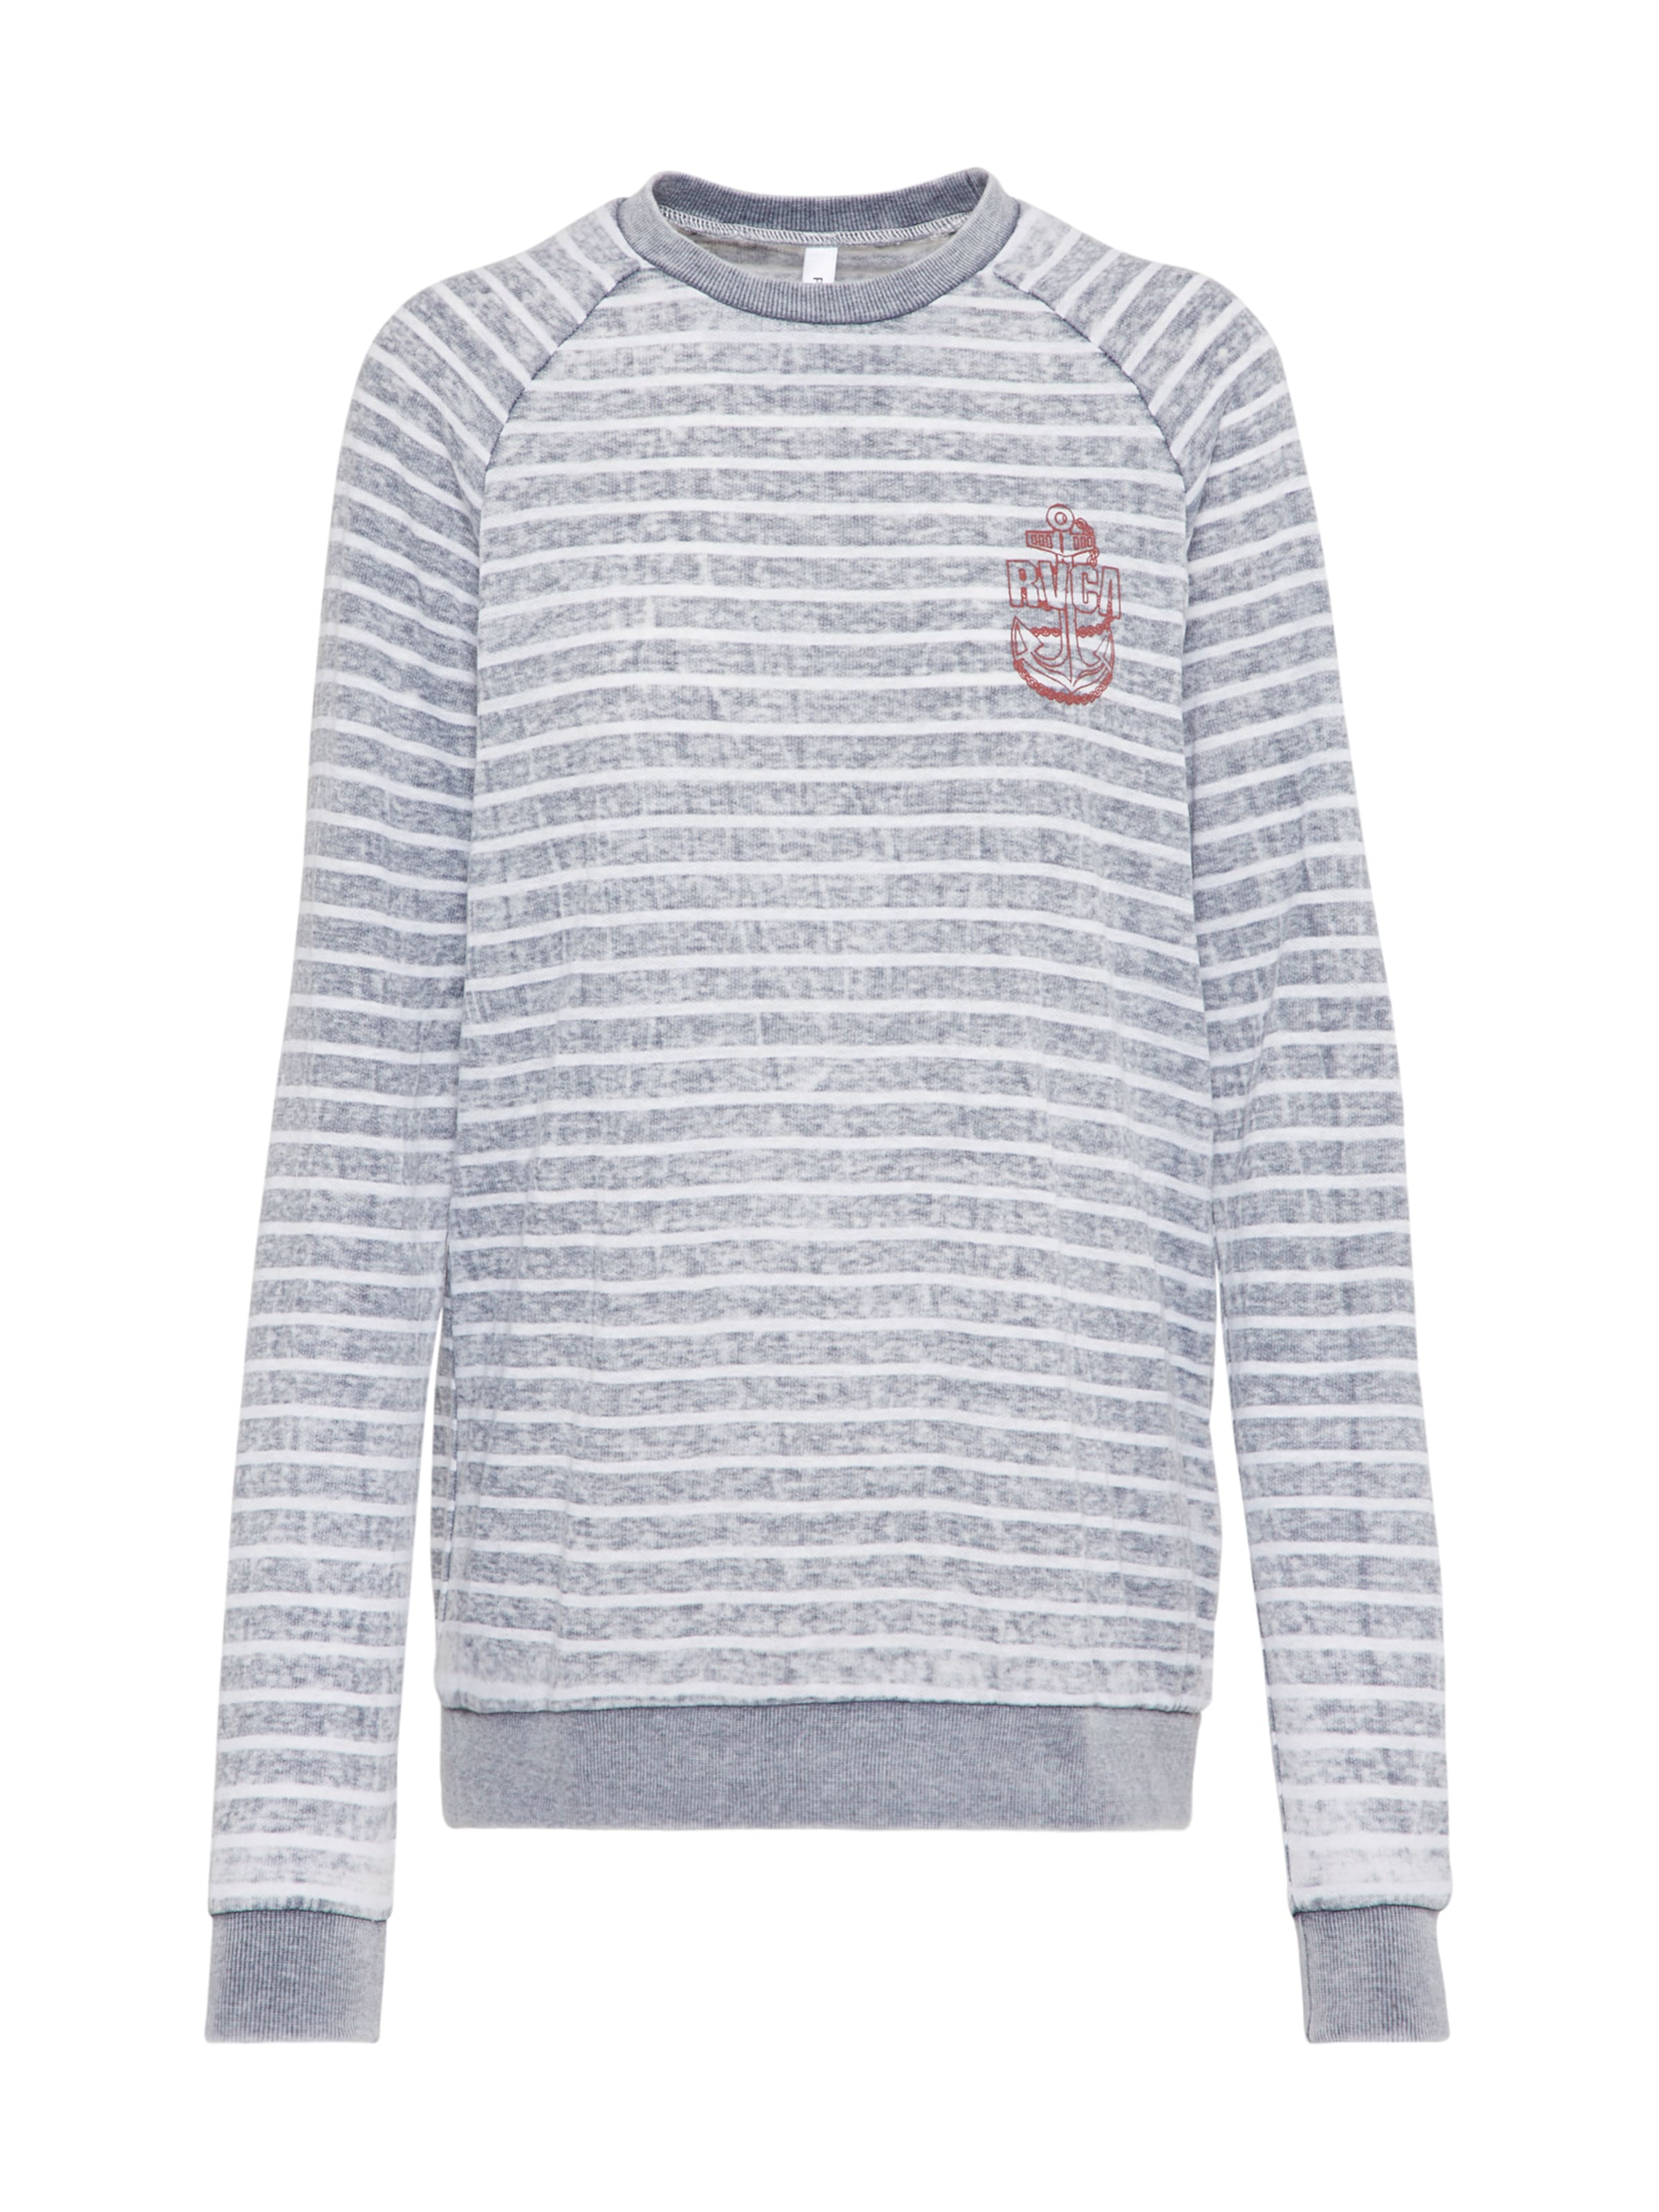 'safe NavyWeinrot Harbor' Weiß In Sweatshirt Rvca clFTKJ1